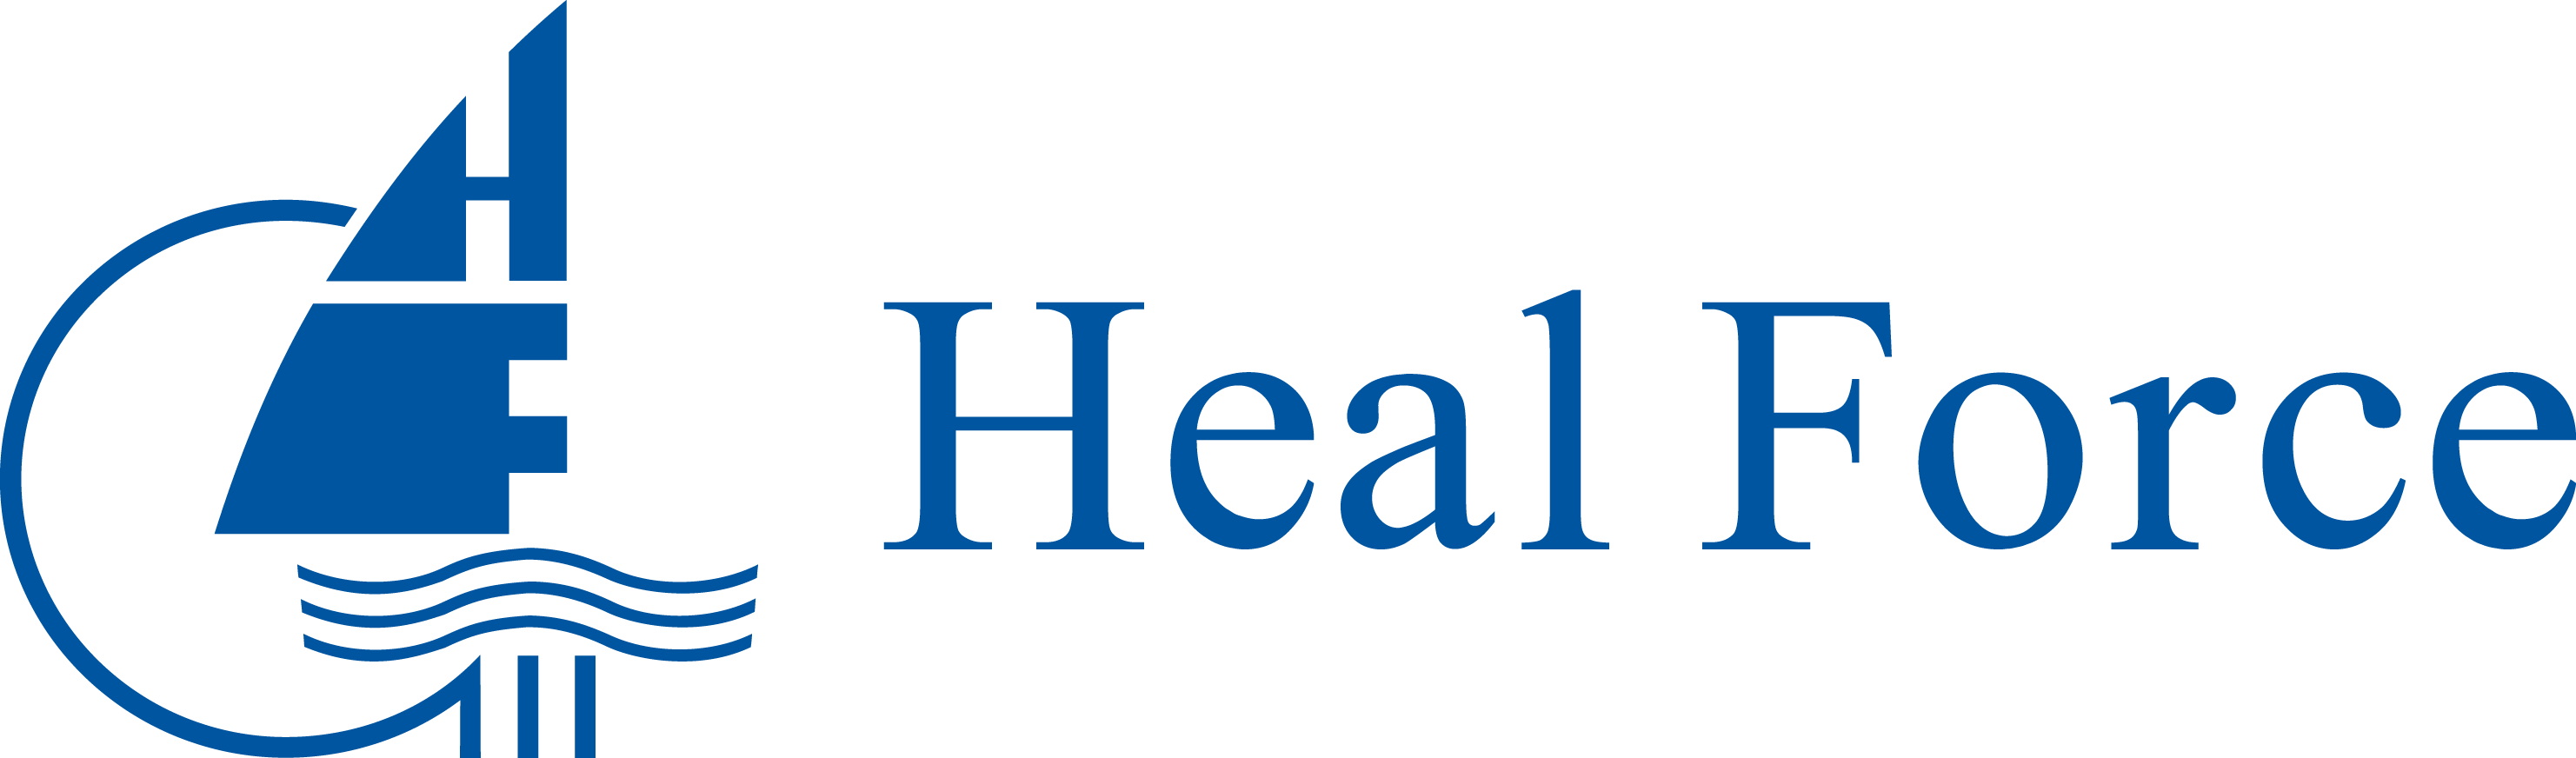 Heal Force International Trading(Shanghai) Ltd